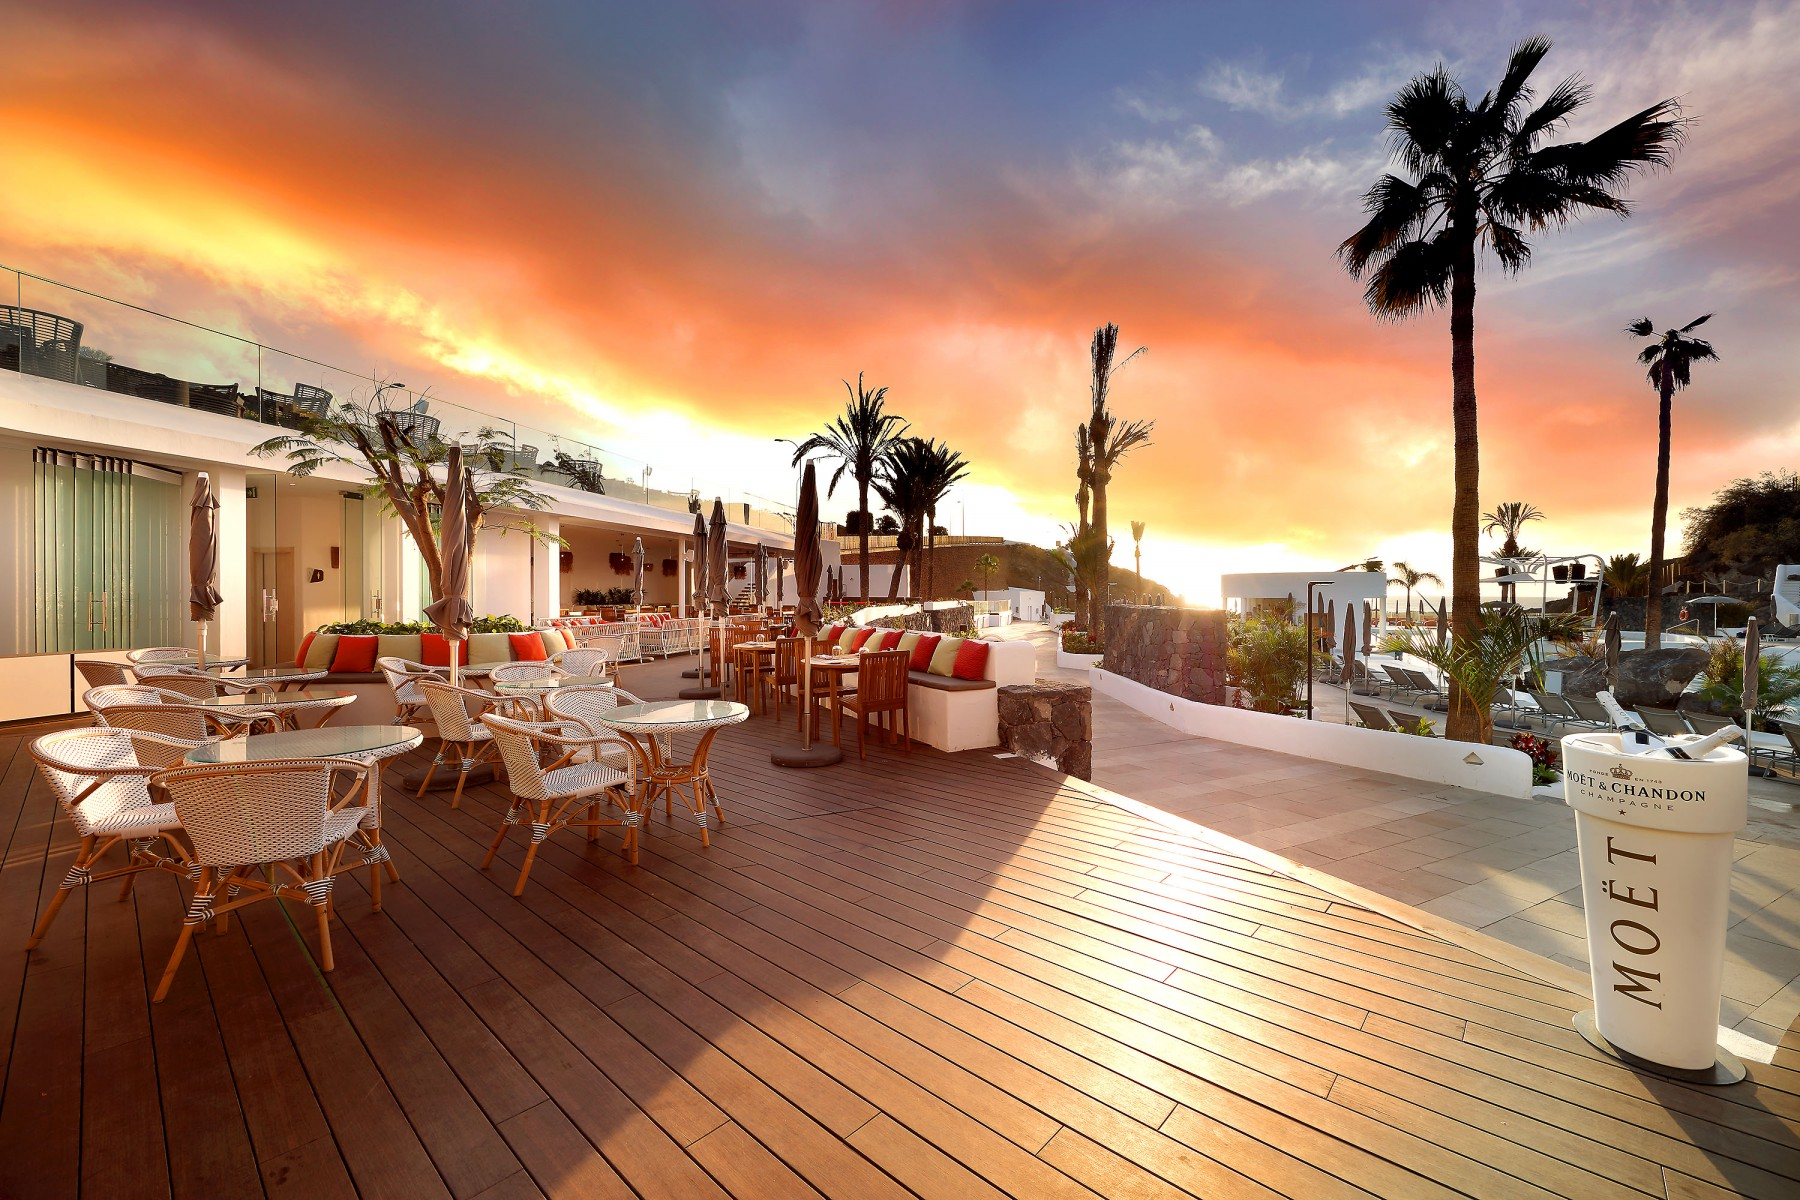 Hard Rock Hotel Tenerife Beach Club